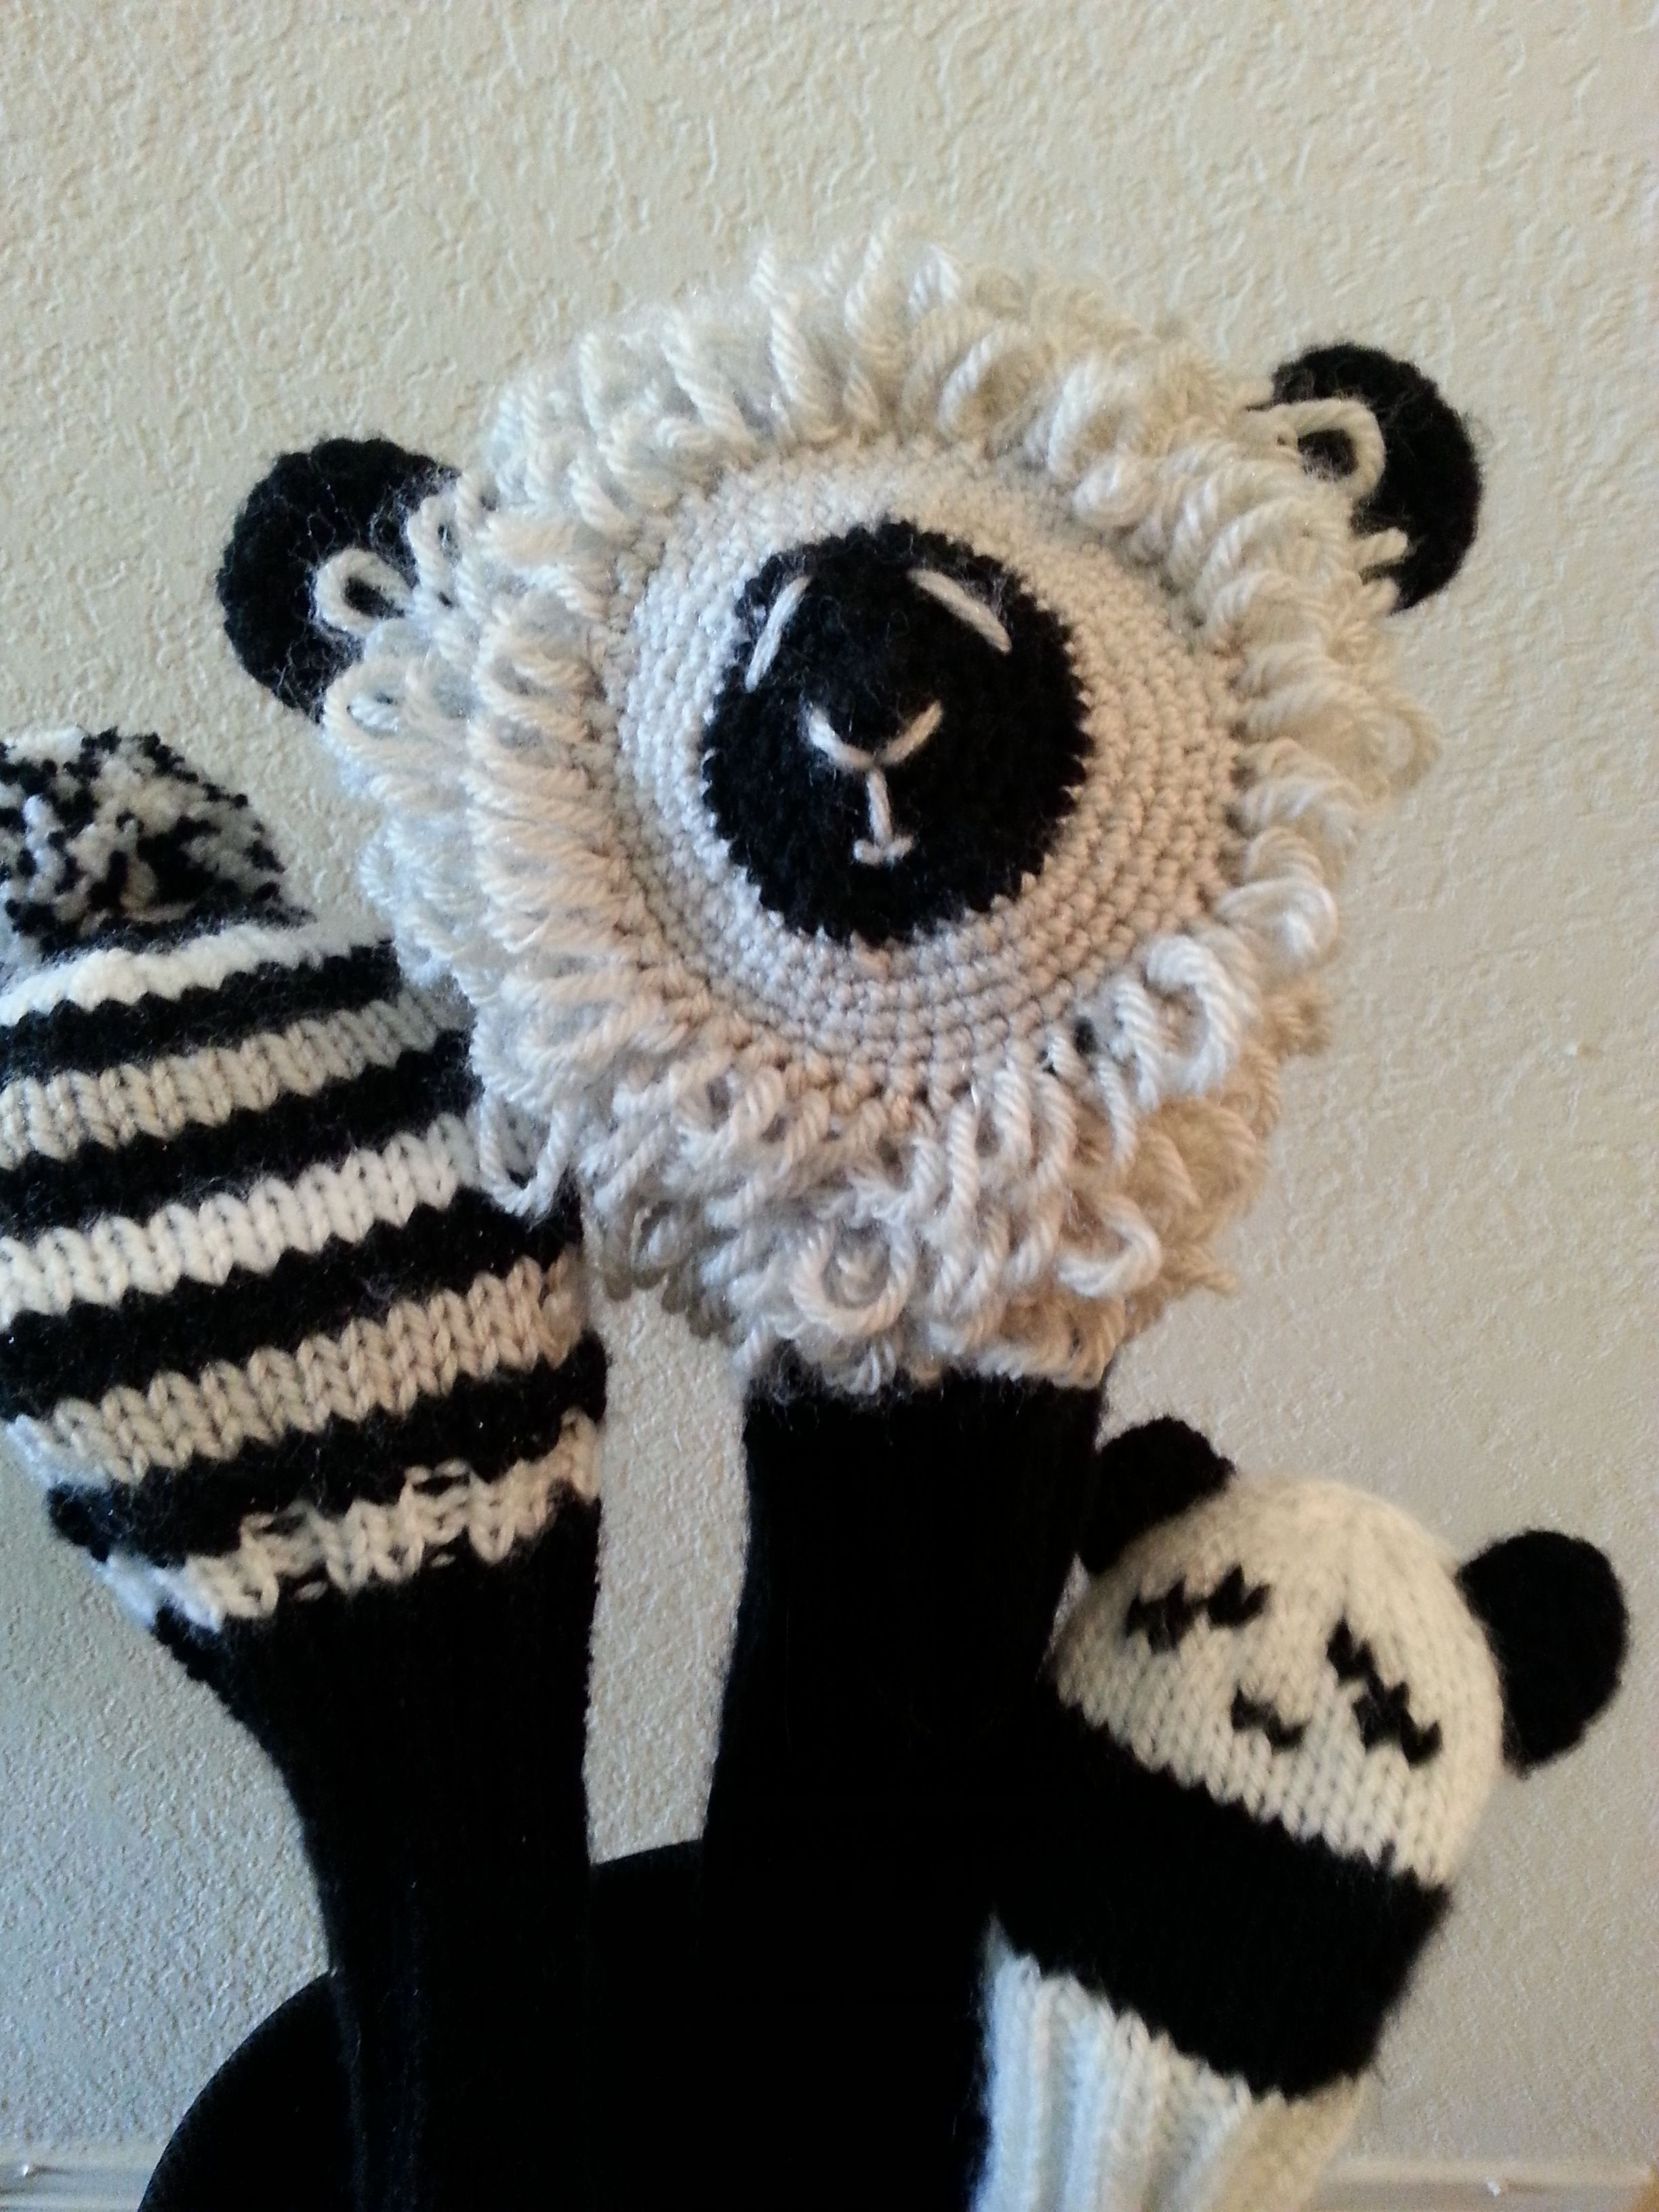 Lamb, panda and striped knitted golf club covers | .Knitting ...